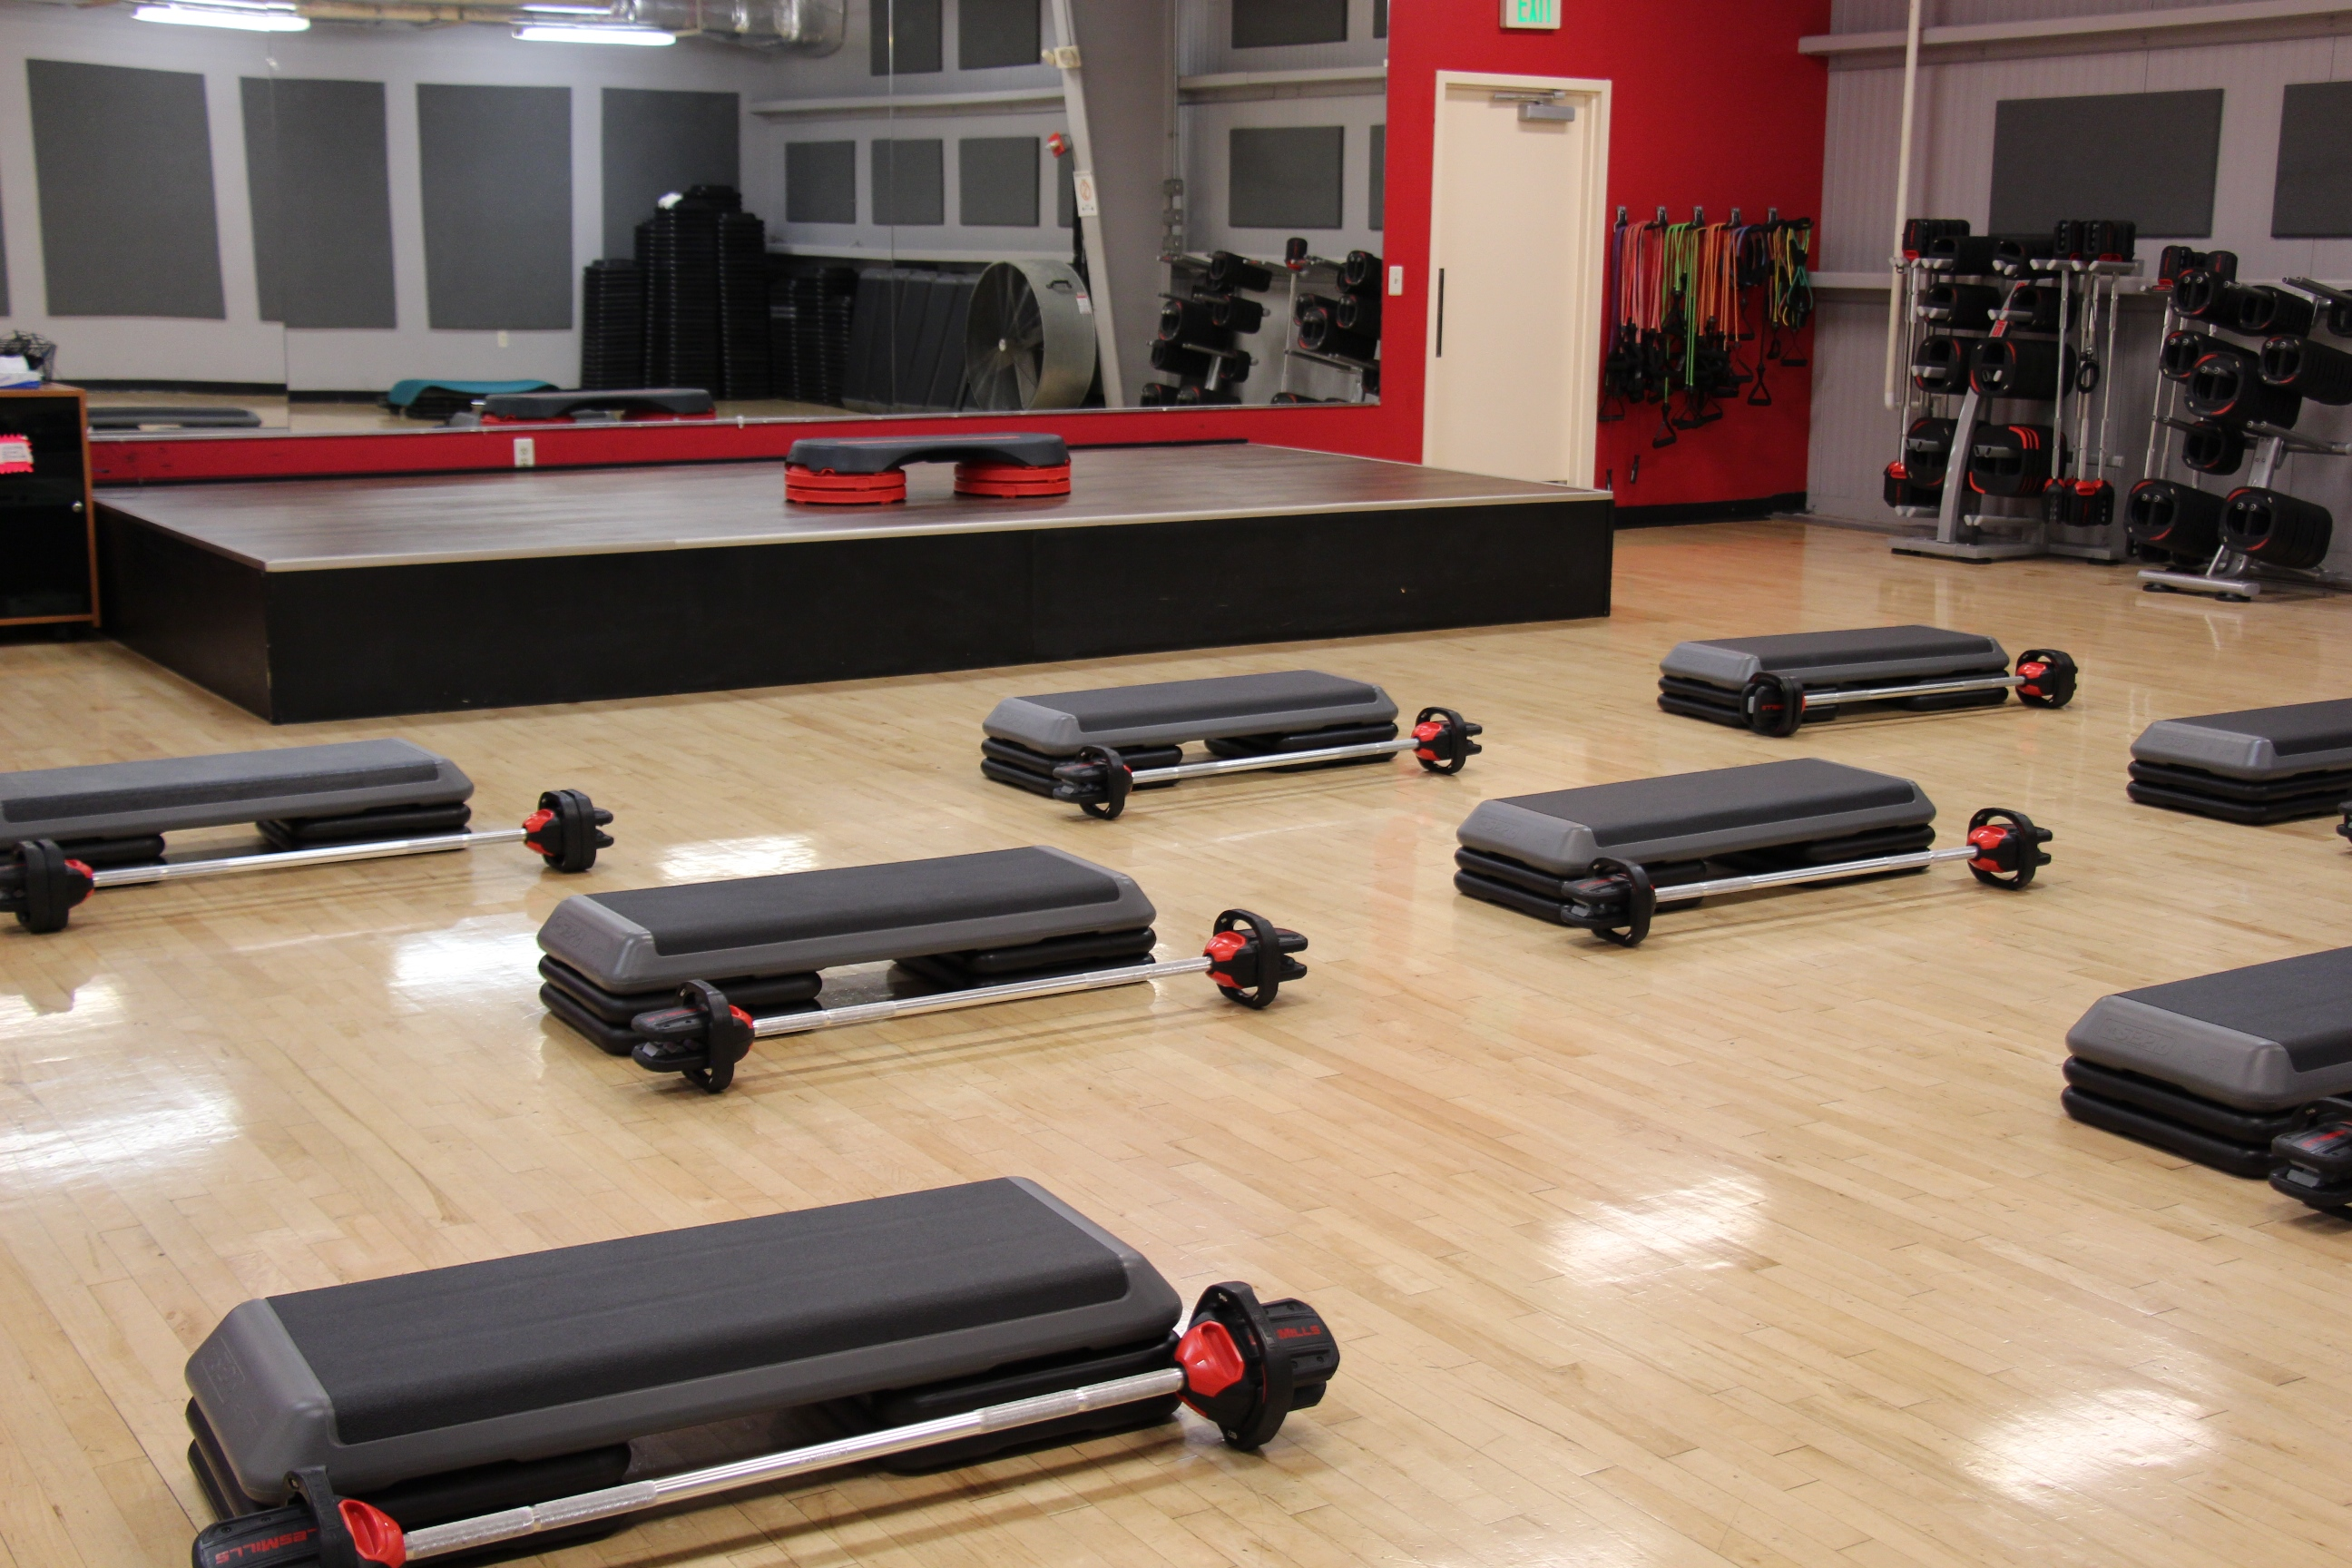 Cardio fitness classroom and equipment